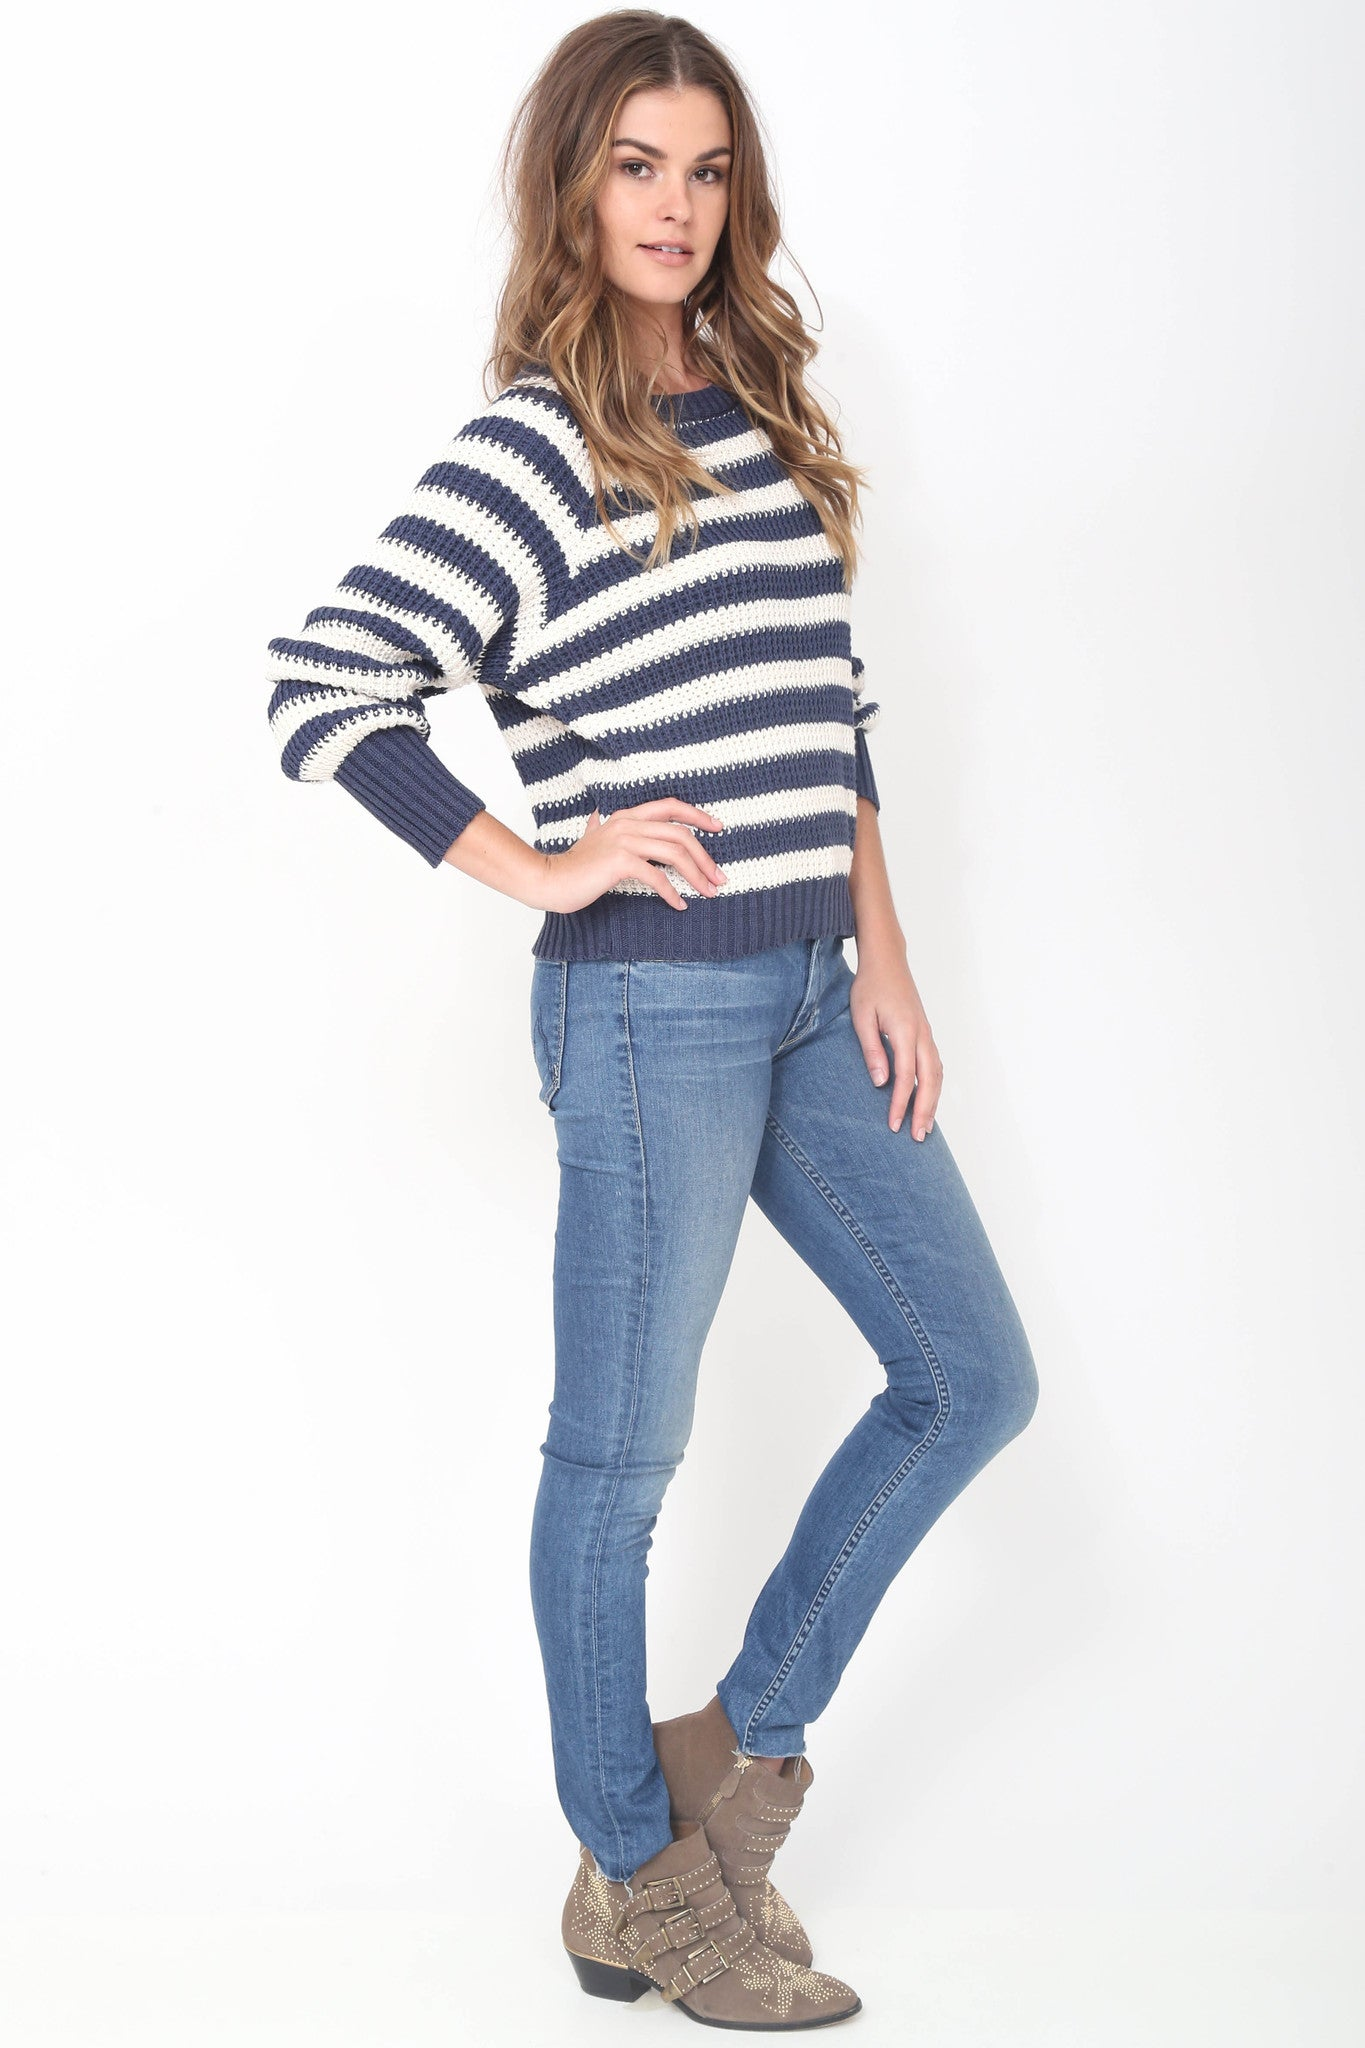 Finn Pullover in Sailor 'LAST ONE'